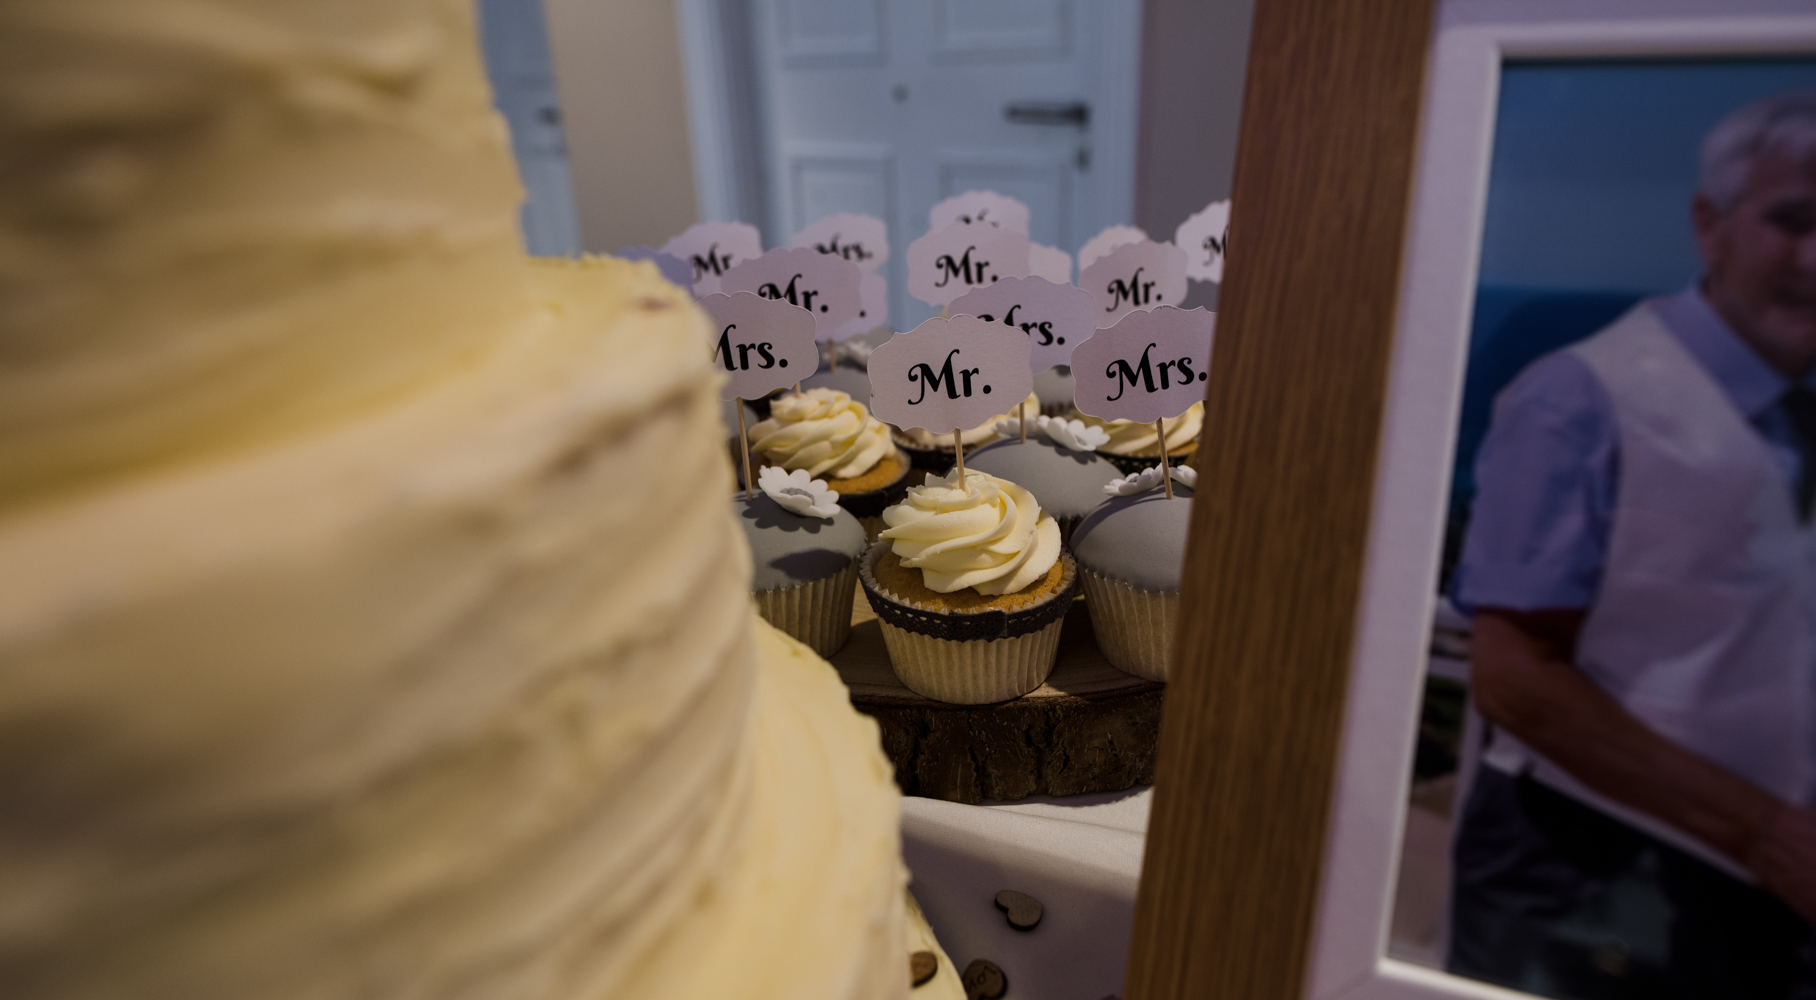 Lovely cup cakes to accompany the wedding cake